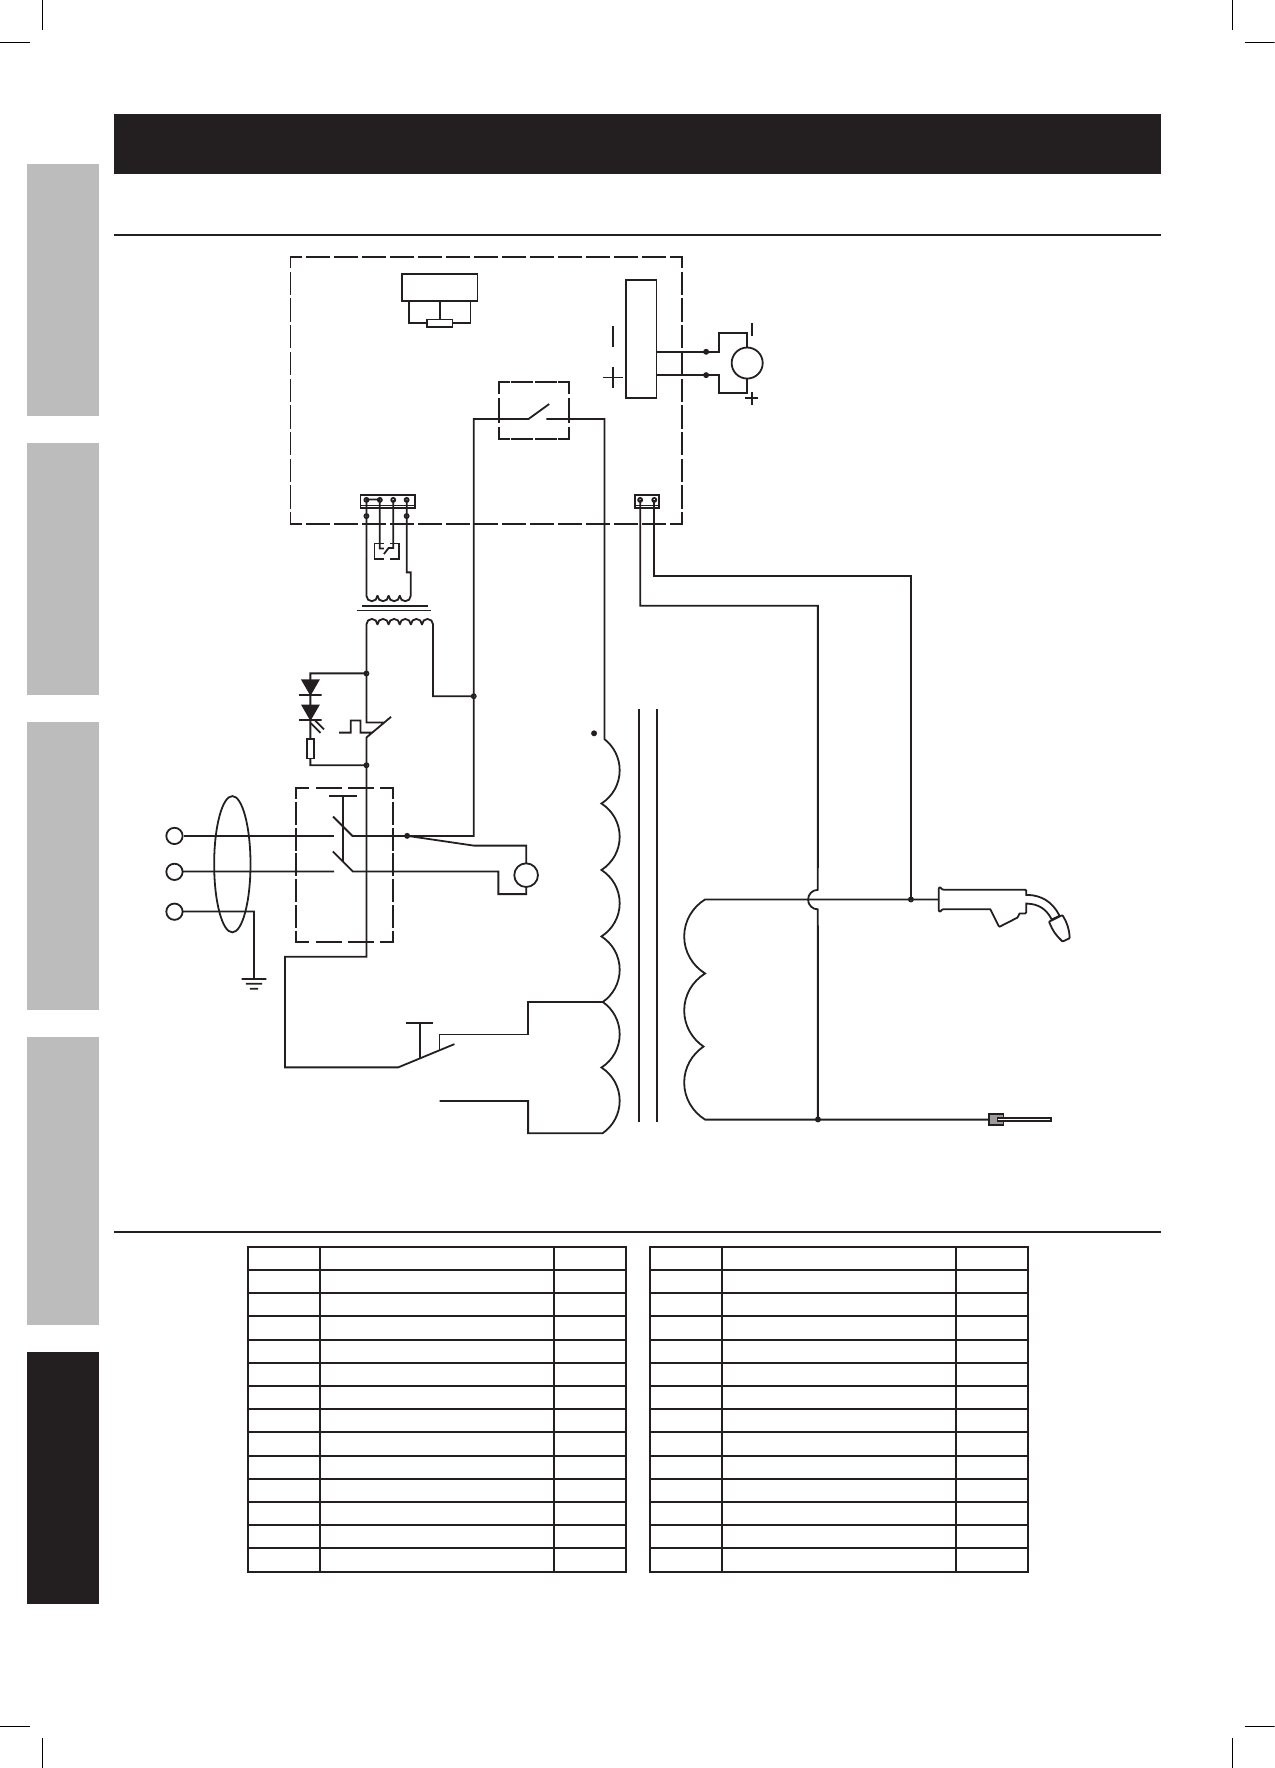 468d6b31 5cde 4c03 9c20 4d9eaab5824b bg1a page 26 of chicago electric welder 68887 user guide wiring diagram for chicago electric welder at creativeand.co